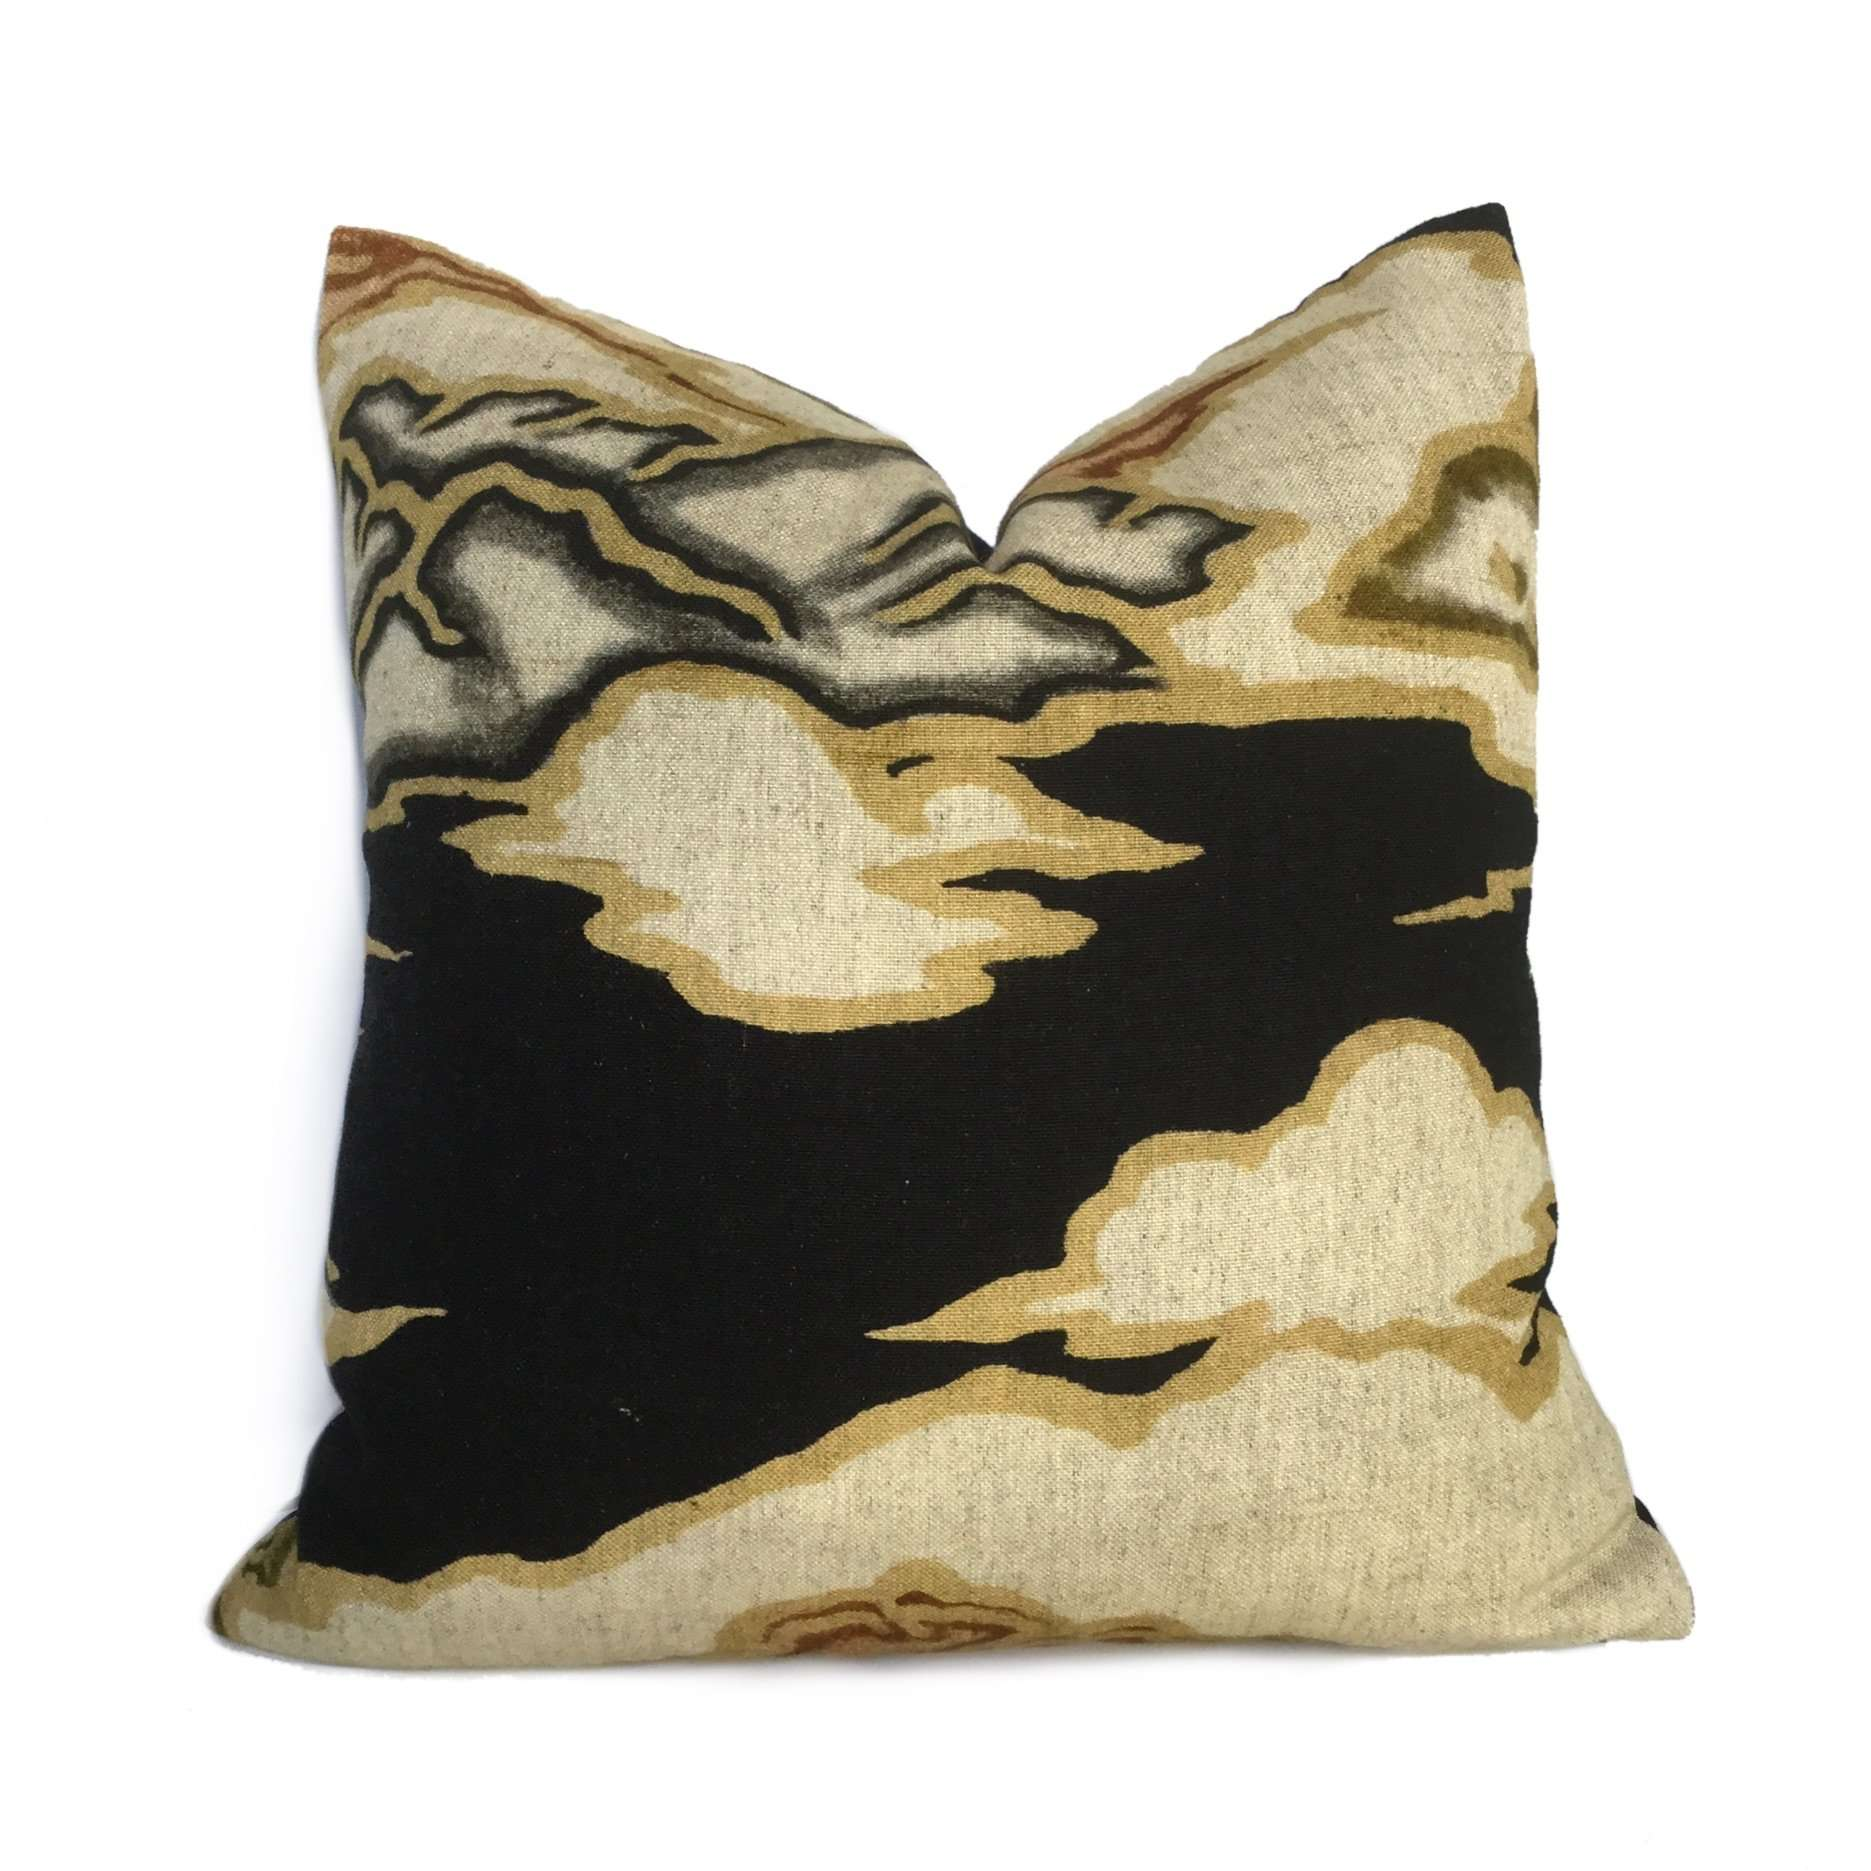 Robert Allen Chattingham Onyx Abstract Pictorial Pillow Cover